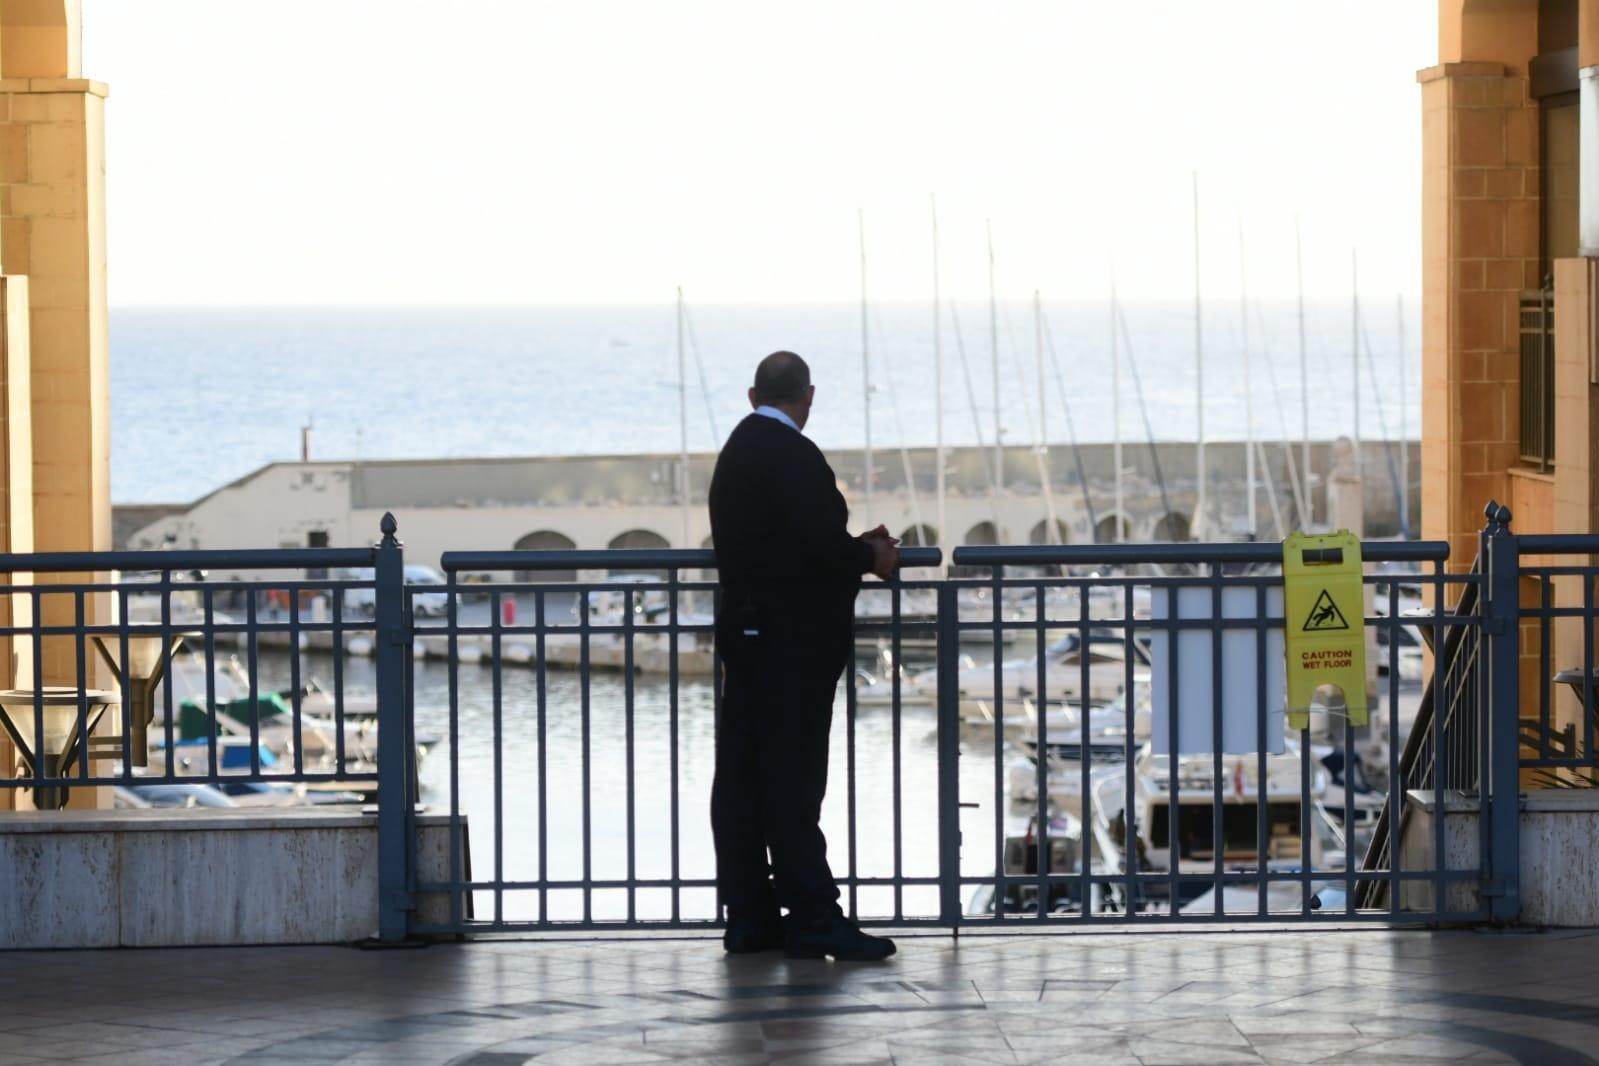 A police officer stands guard outside Portomaso on Wednesday morning. Photo: Jonathan Borg